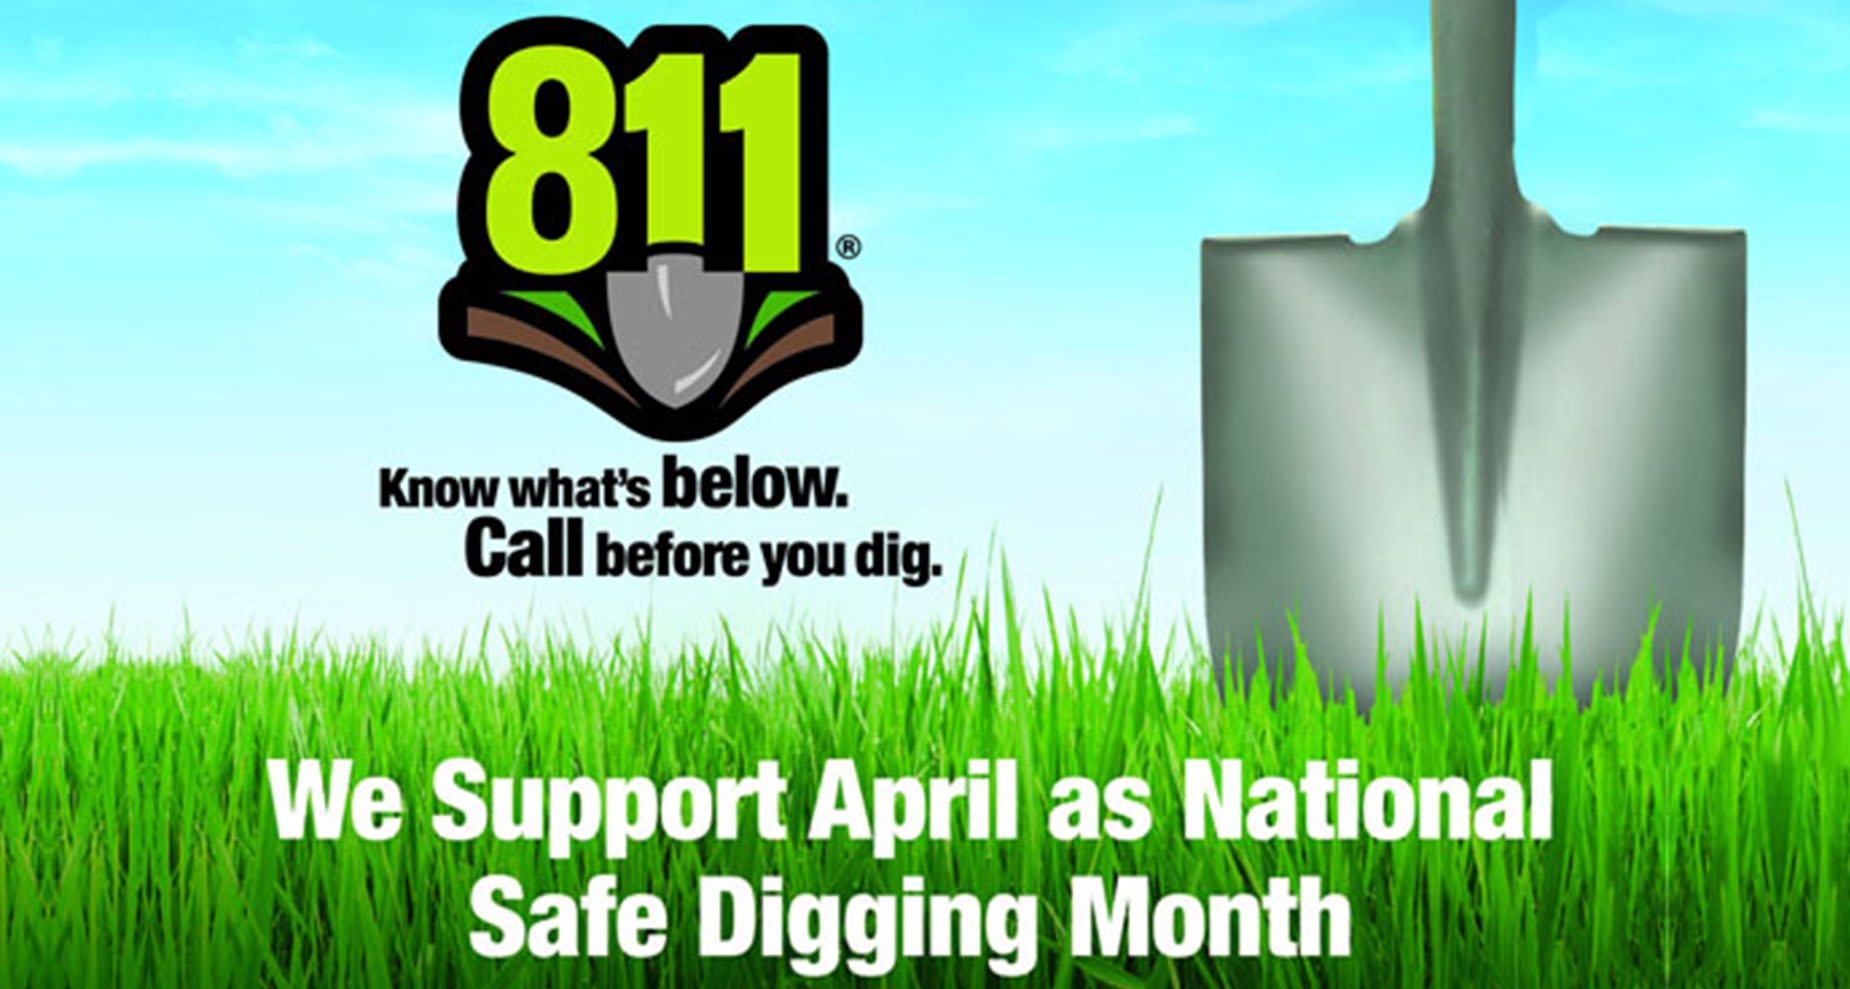 Conti Supports National Safety Digging Month